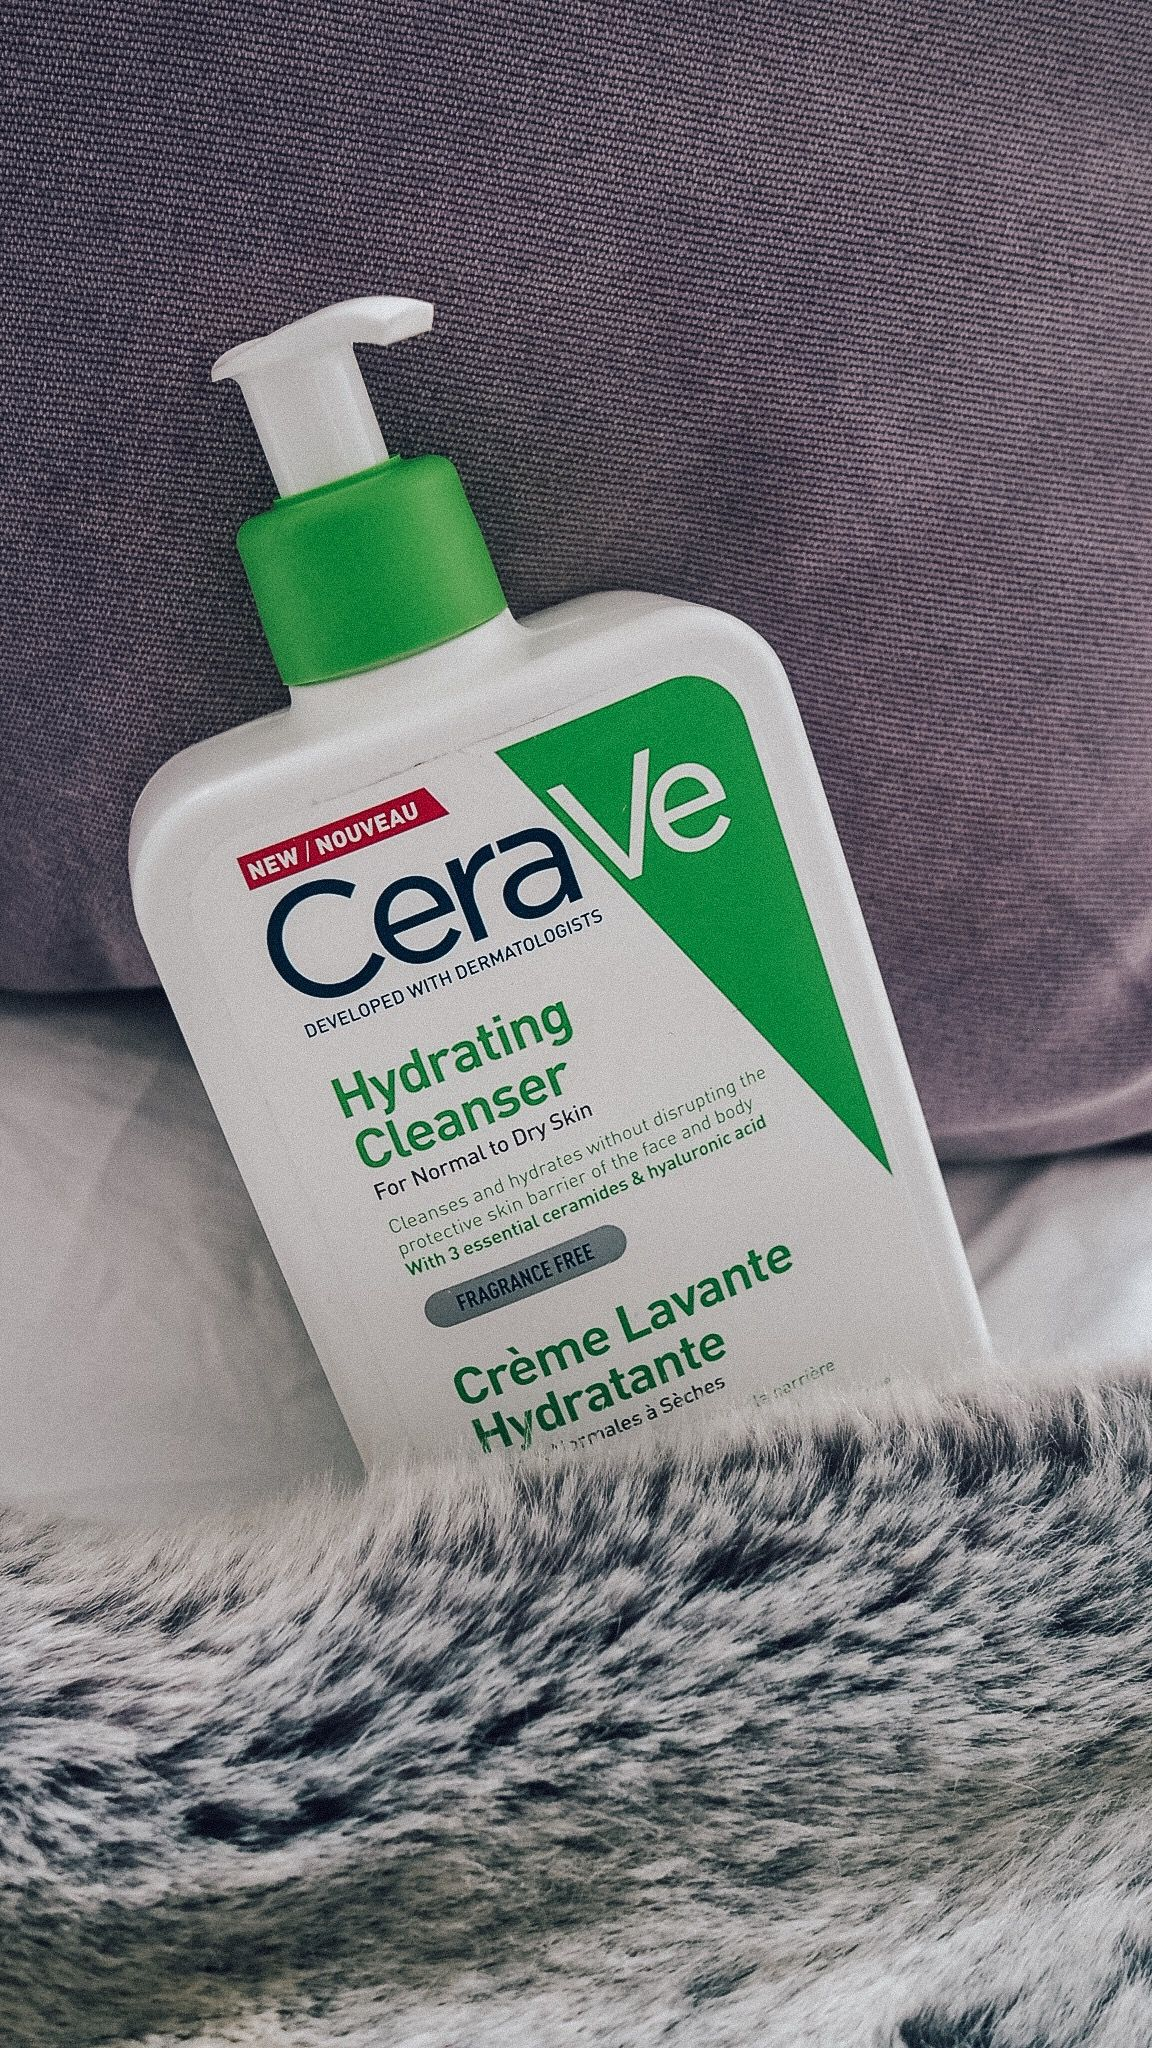 The £10 cleanser Hydrating cleanser, Cleanser, Cerave